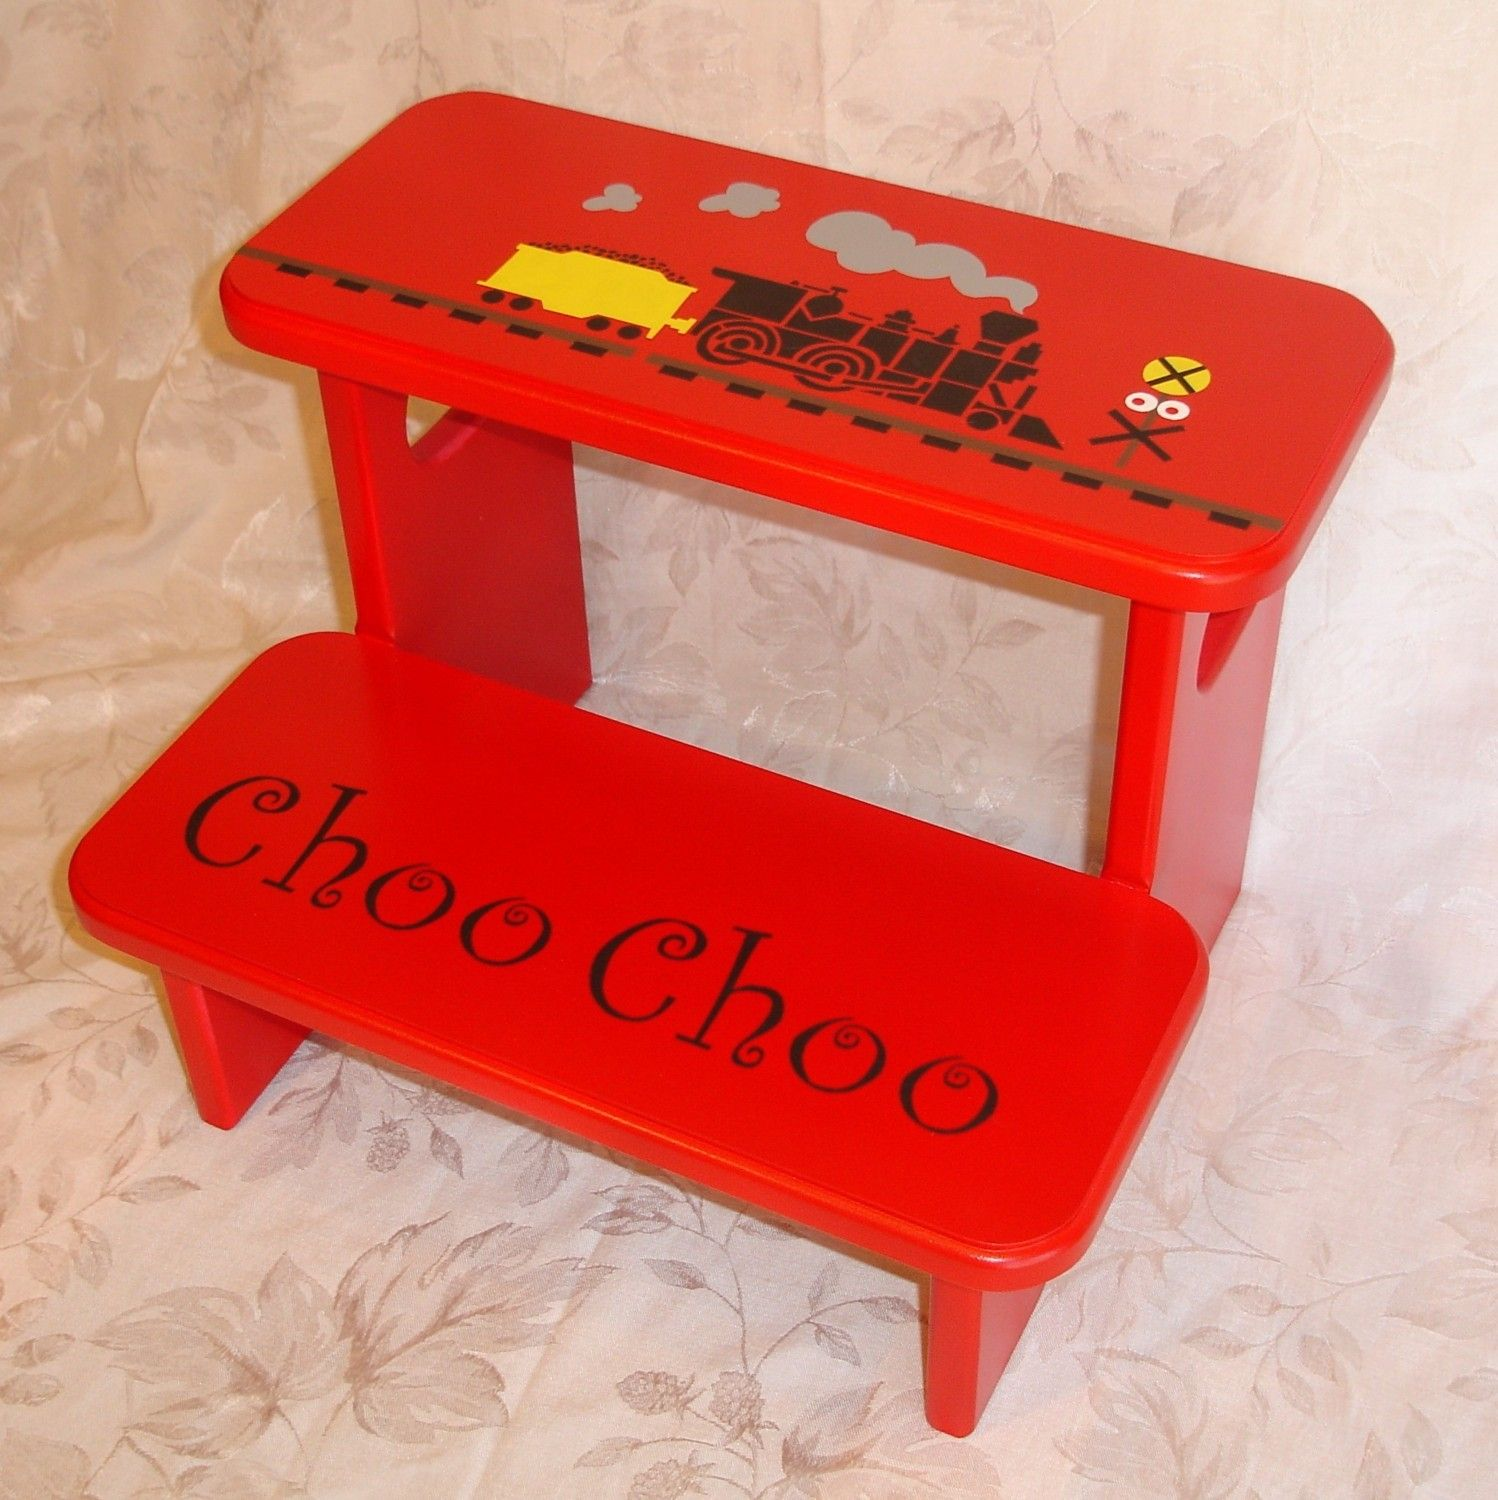 Choo Choo Train Step Stool In Red Step Stool Diy Projects Stool